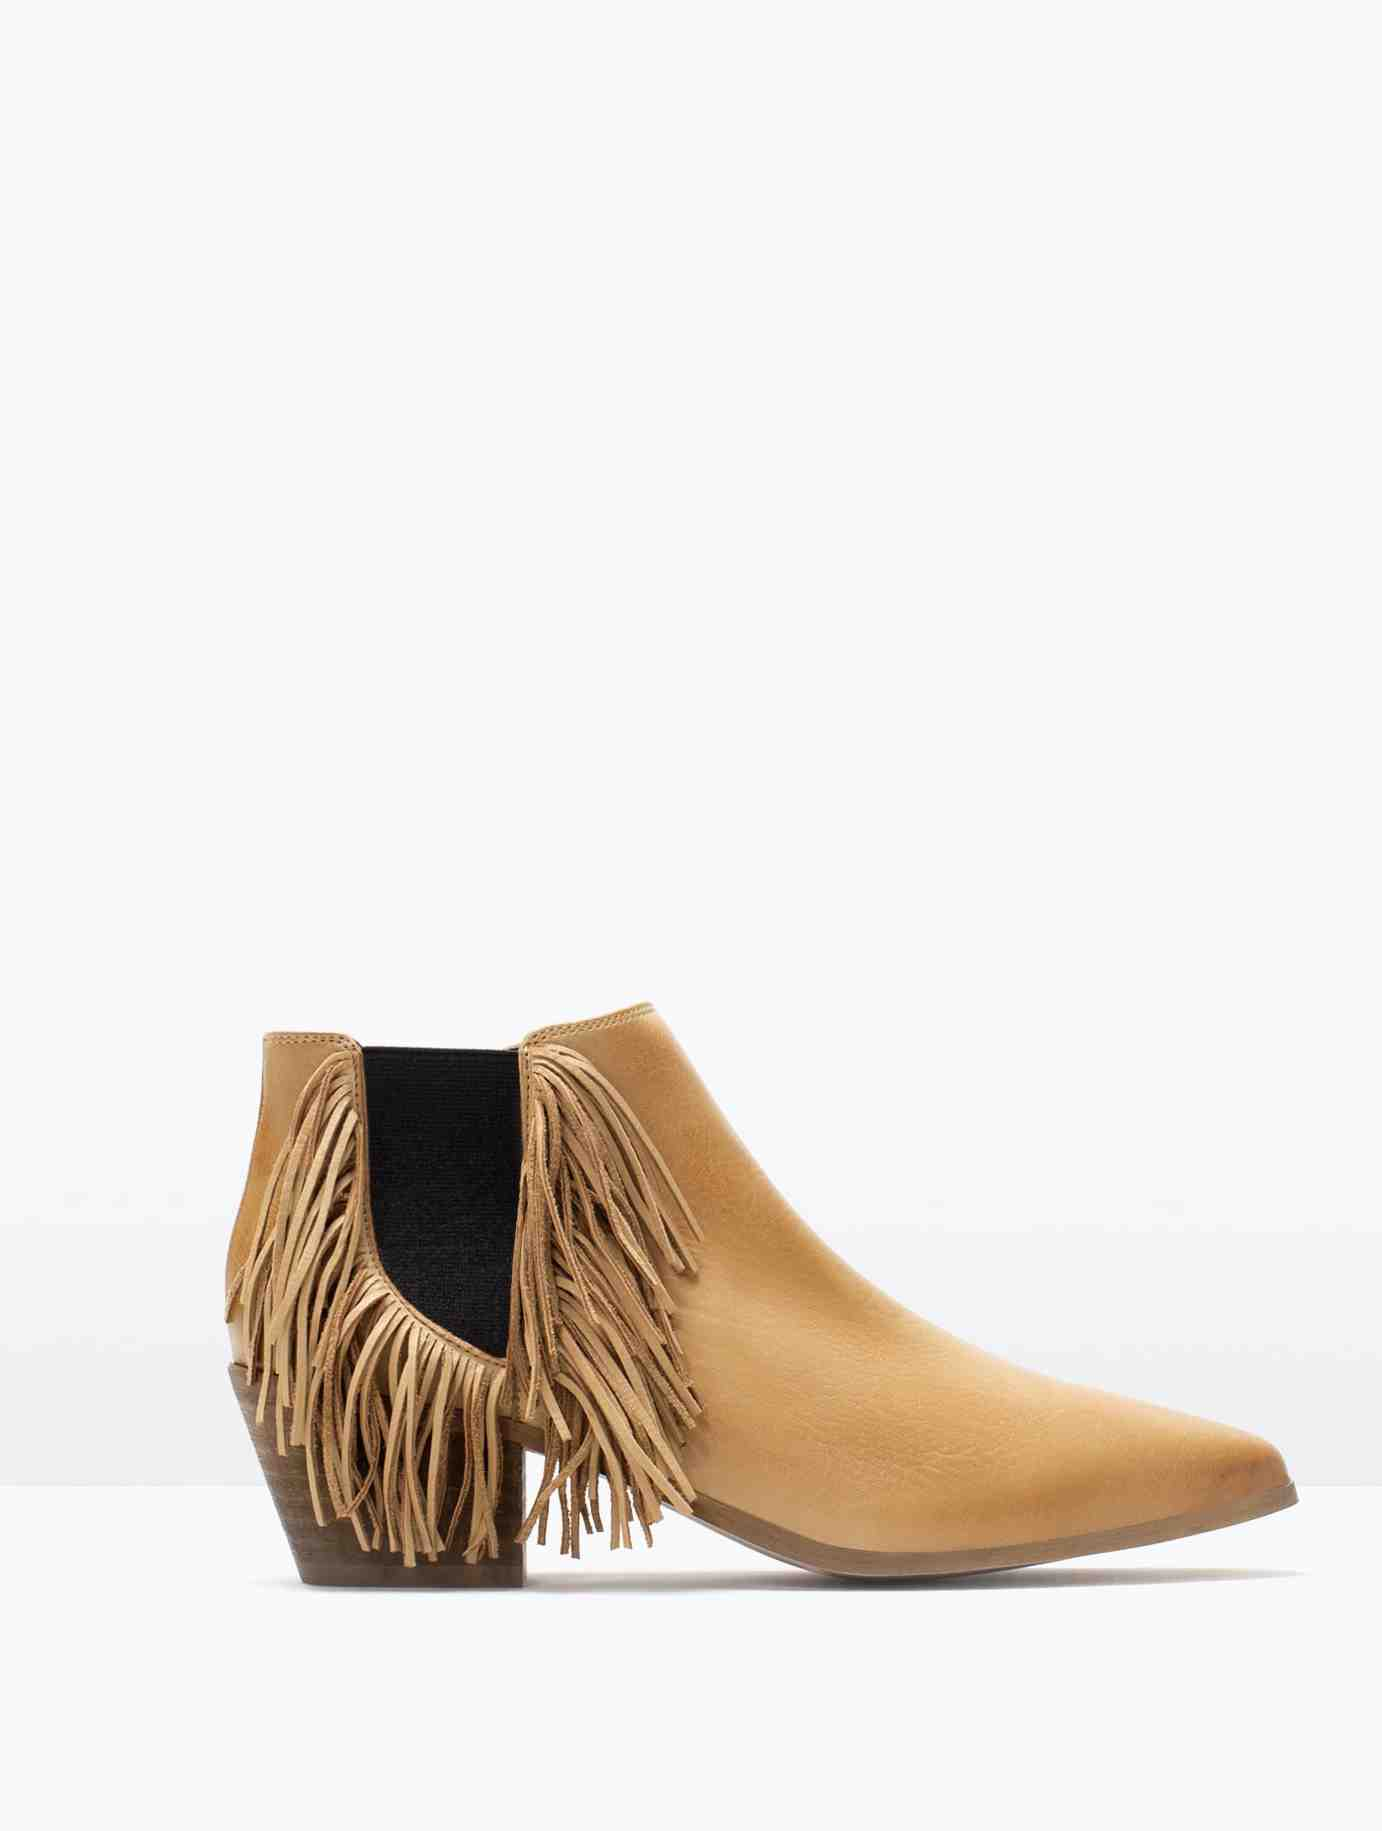 Zara - Bottines (80 €)